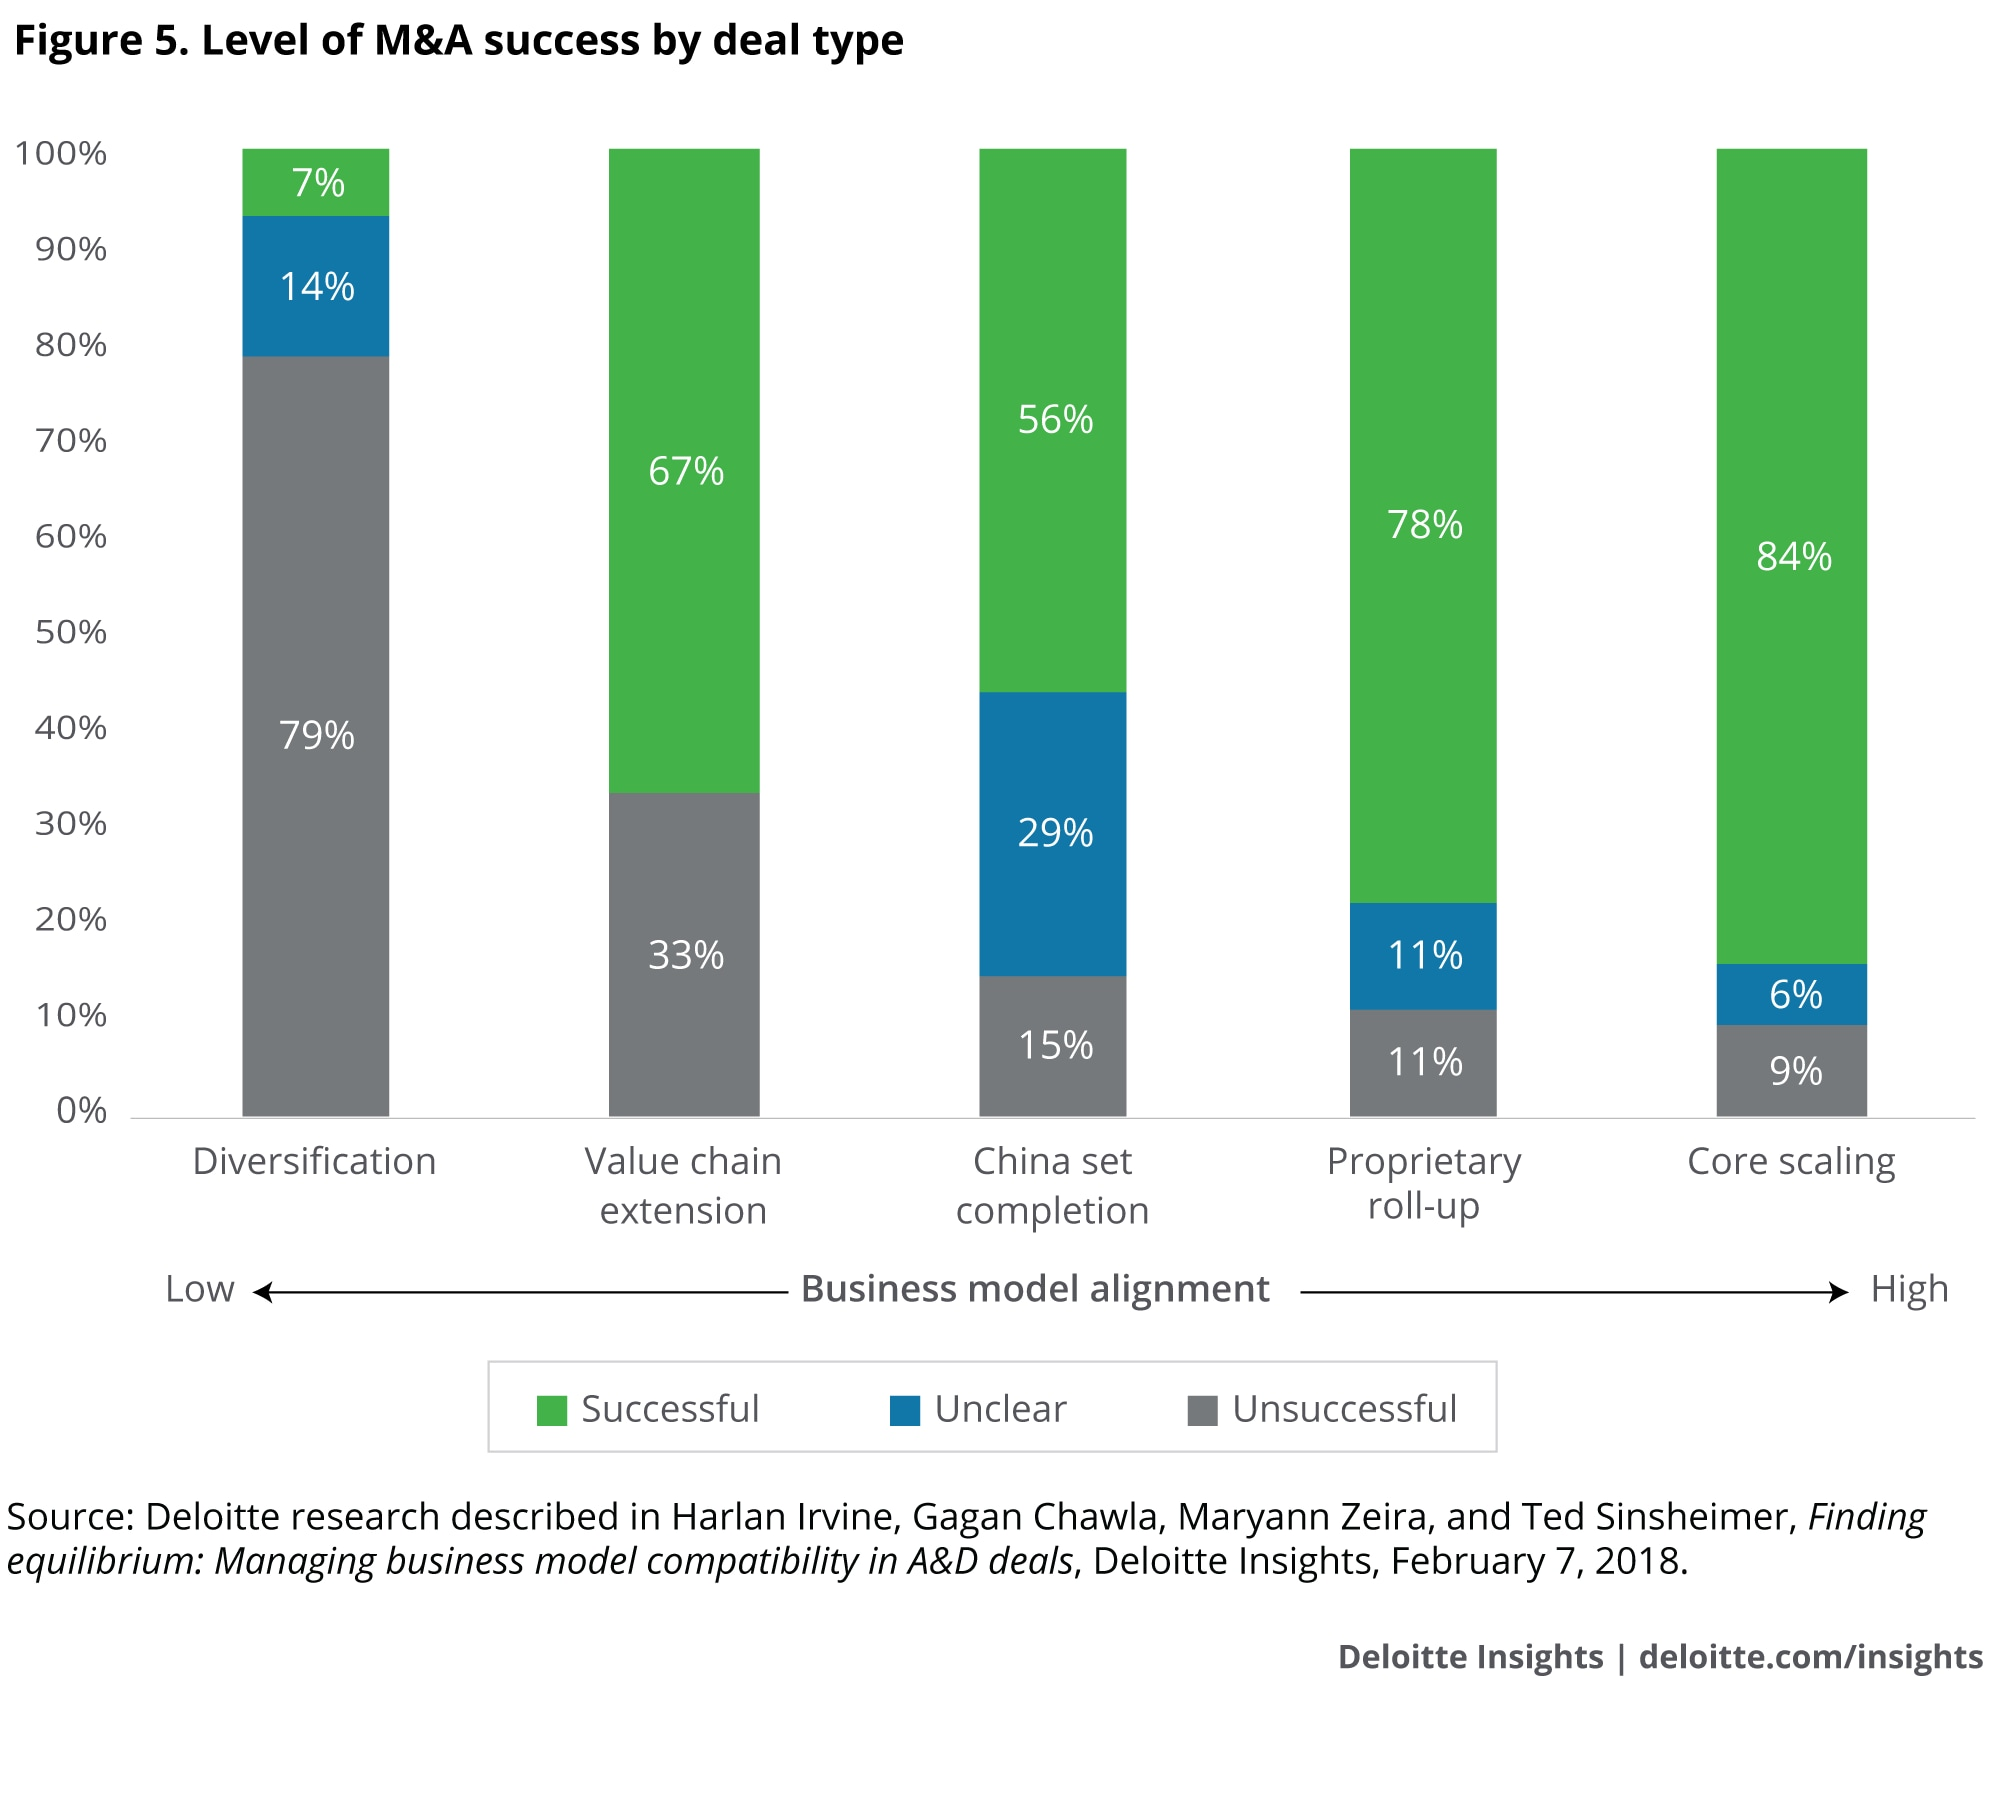 Level of M&A success by deal type